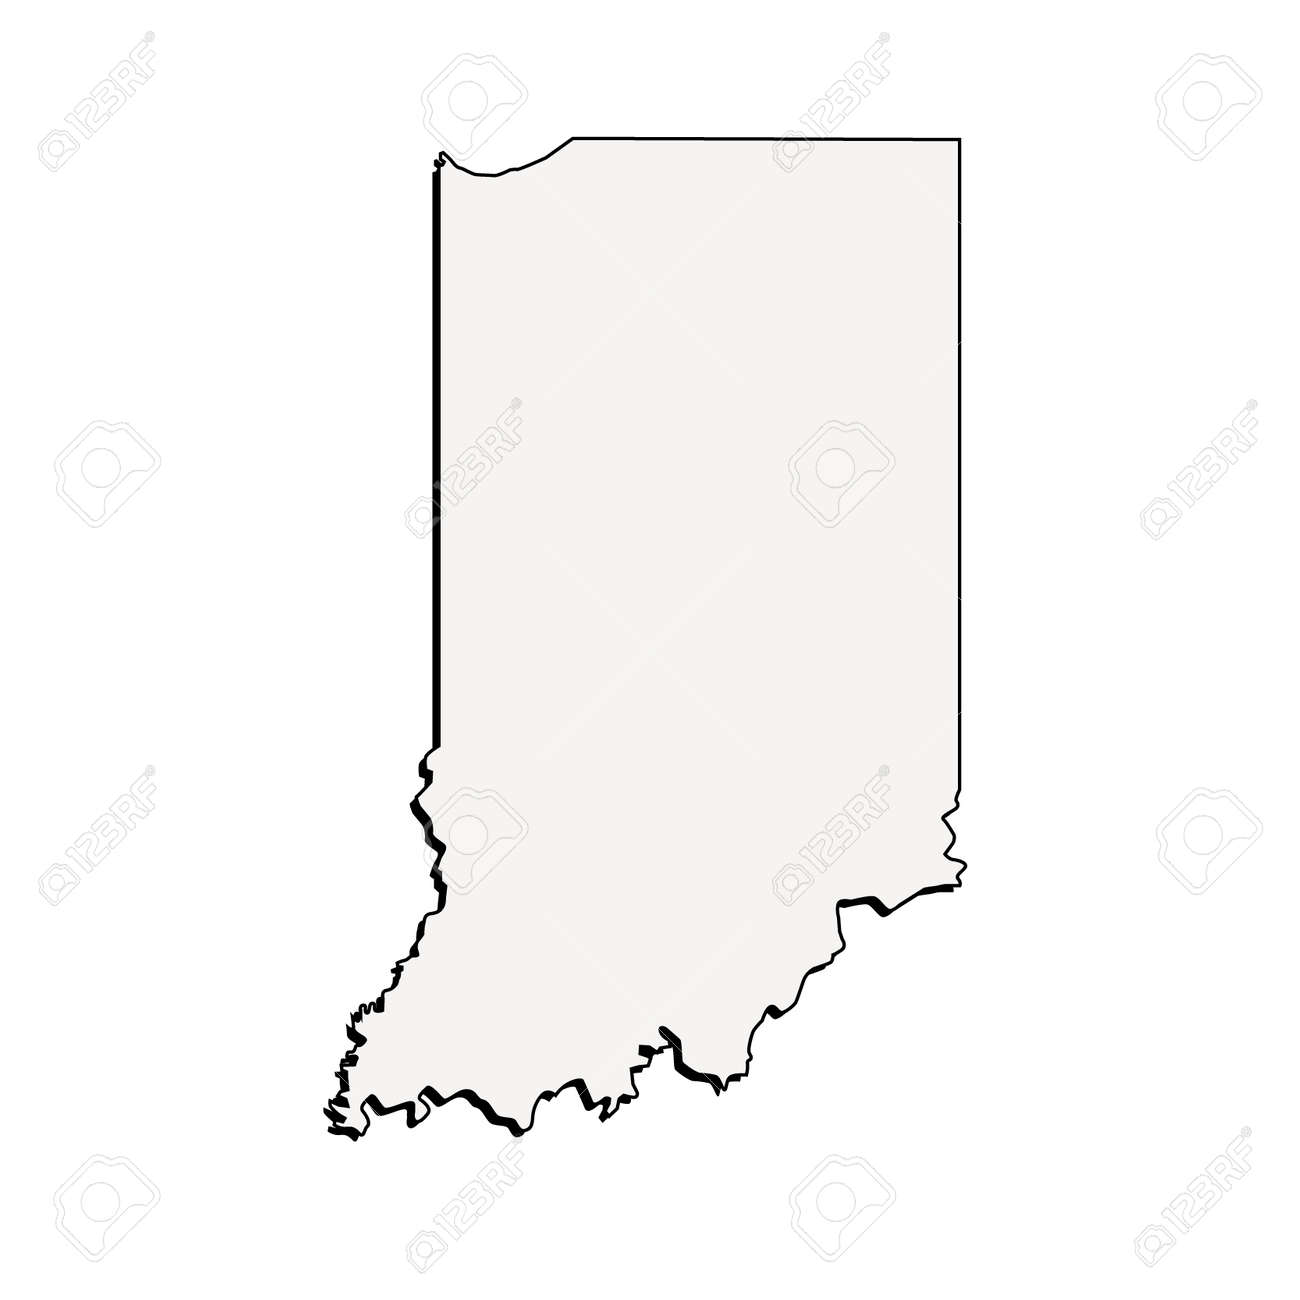 Vector Indiana State 3D Outline Map on indiana state outline eps, indiana state flower, california state outline, indiana state geography, new orleans map outline, indiana outline vector, indiana state outline clip art, kentucky state shape outline, alabama map outline, tennessee map outline, mo state outline, indiana state highest point, columbian exchange map outline, ohio state outline, indiana state shape, indiana city outline, south florida map outline, houston map outline, cincinnati map outline, aztec empire map outline,